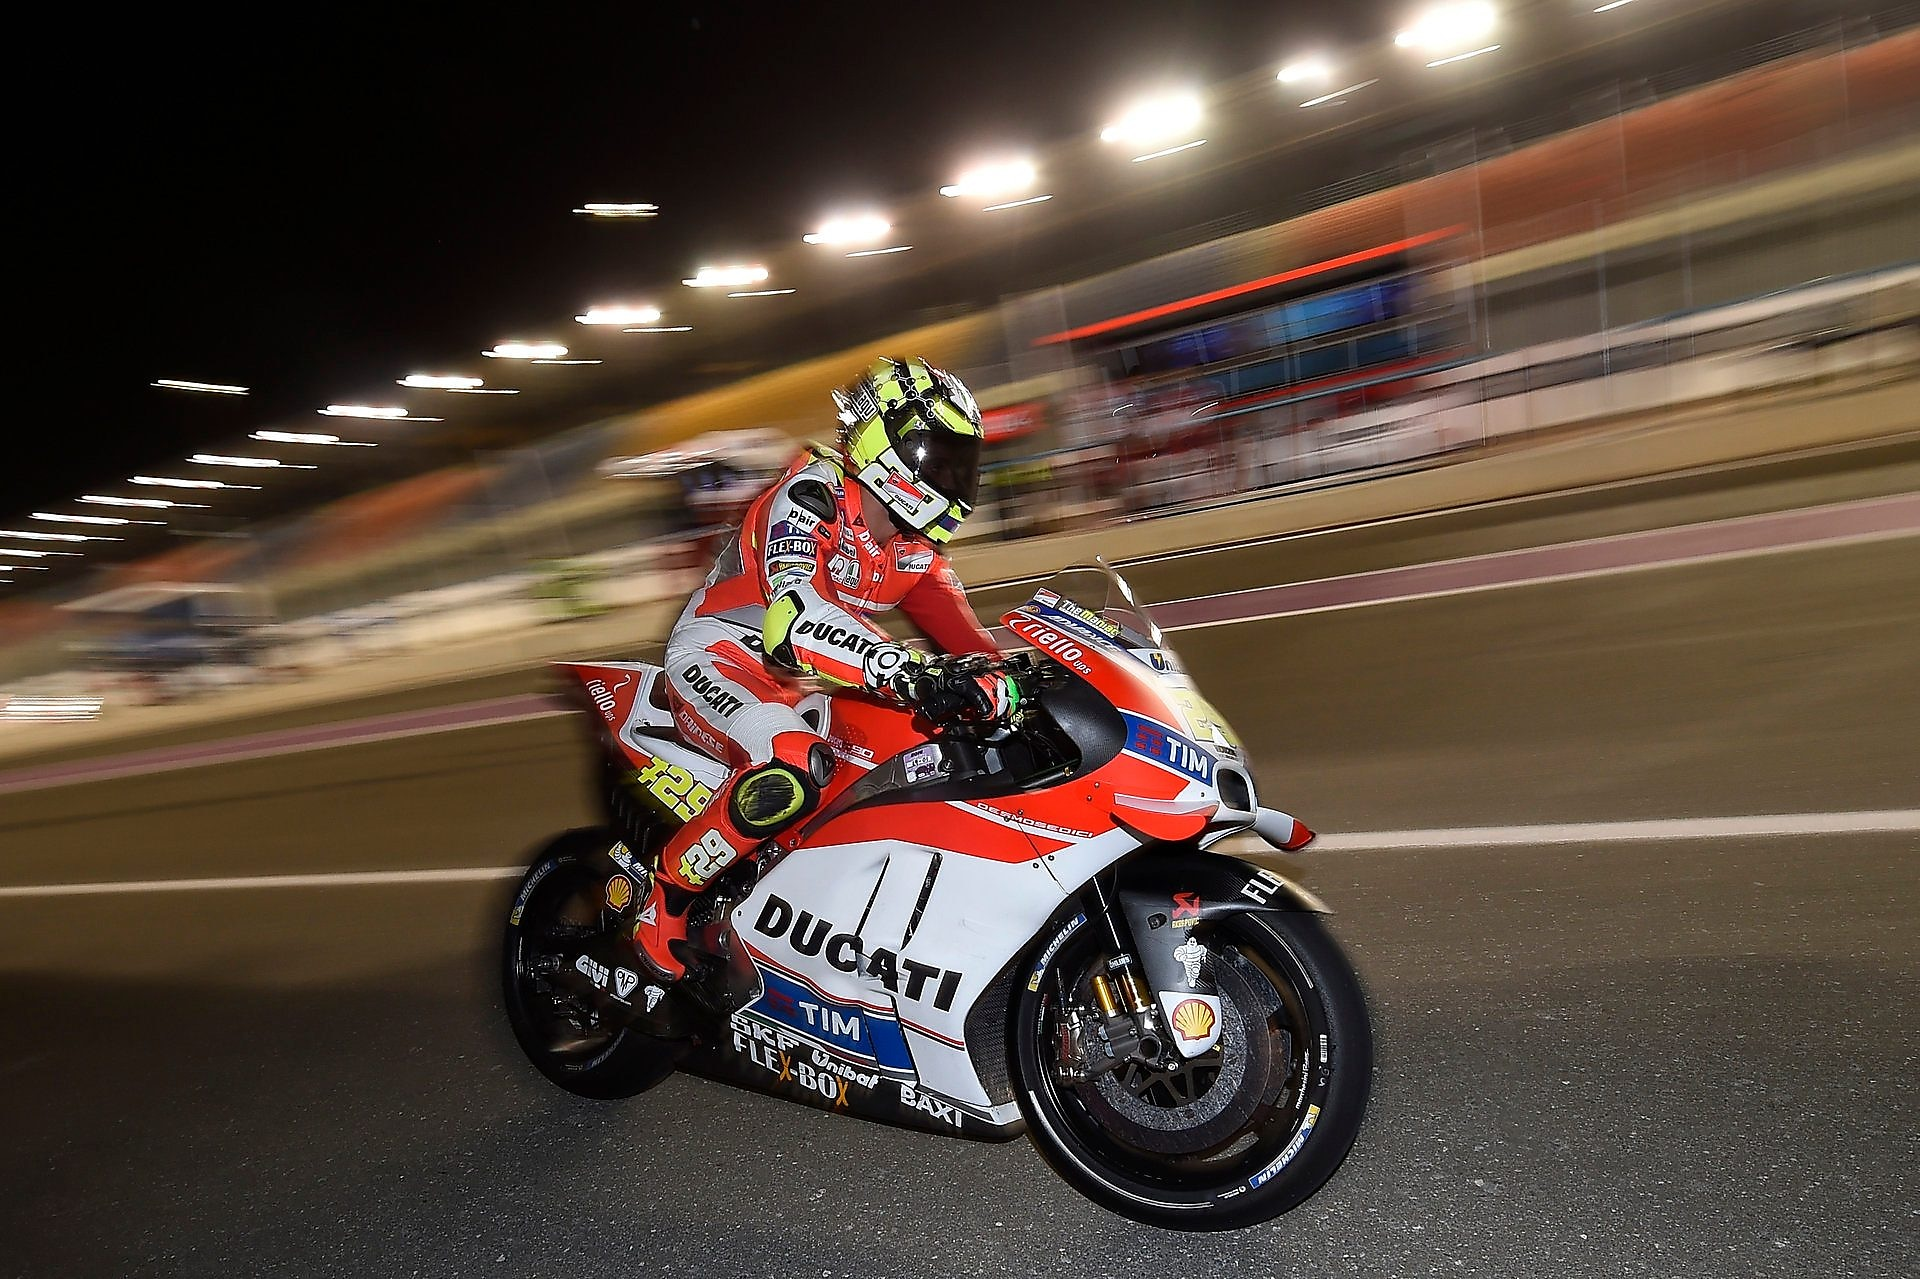 Ducati rider riding motorcycle at high speed on a track at night